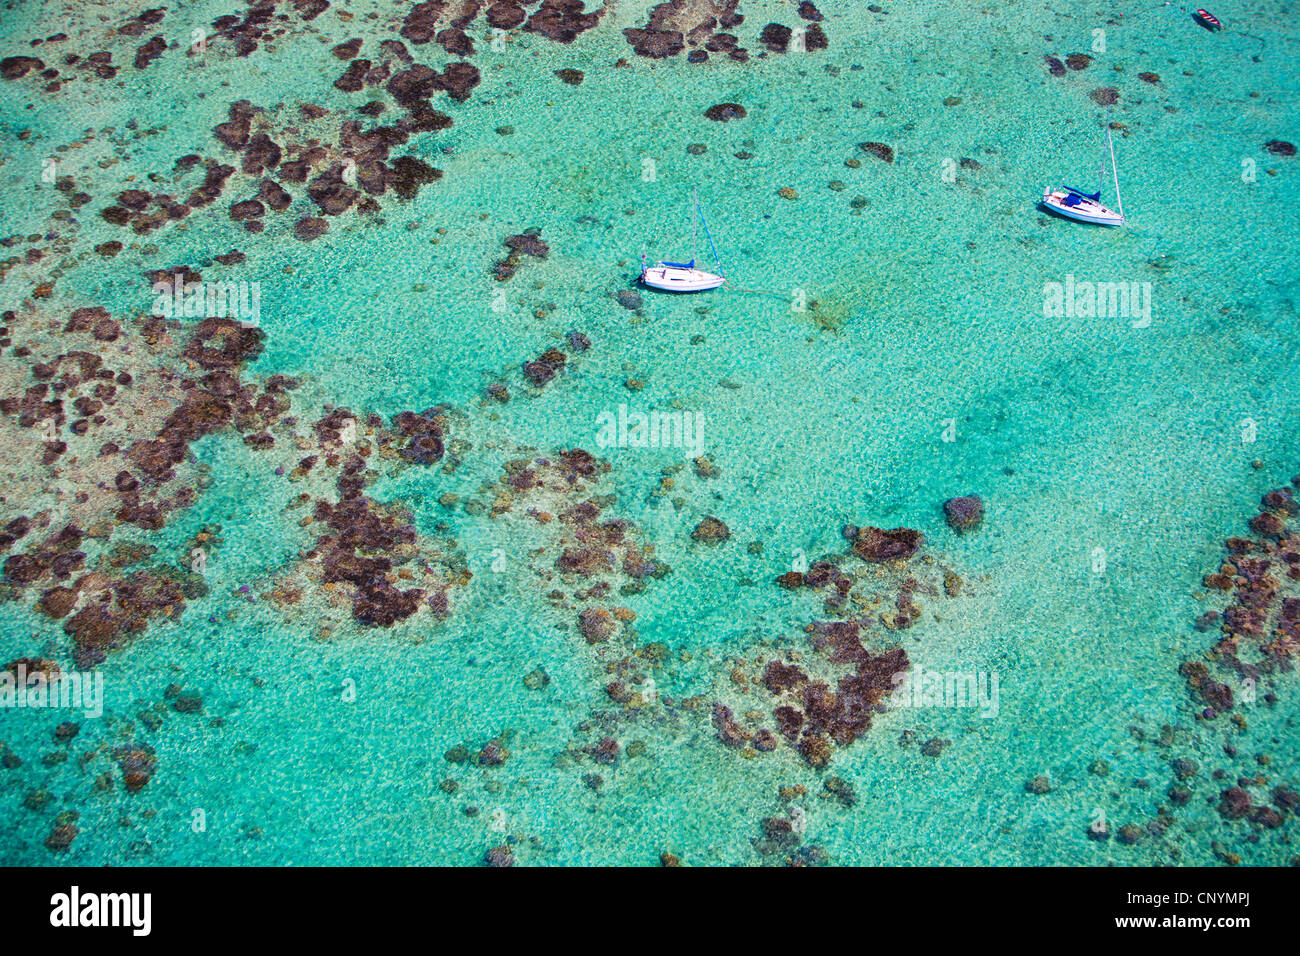 two little boats in turquoise water of Indian Ocean Stock Photo